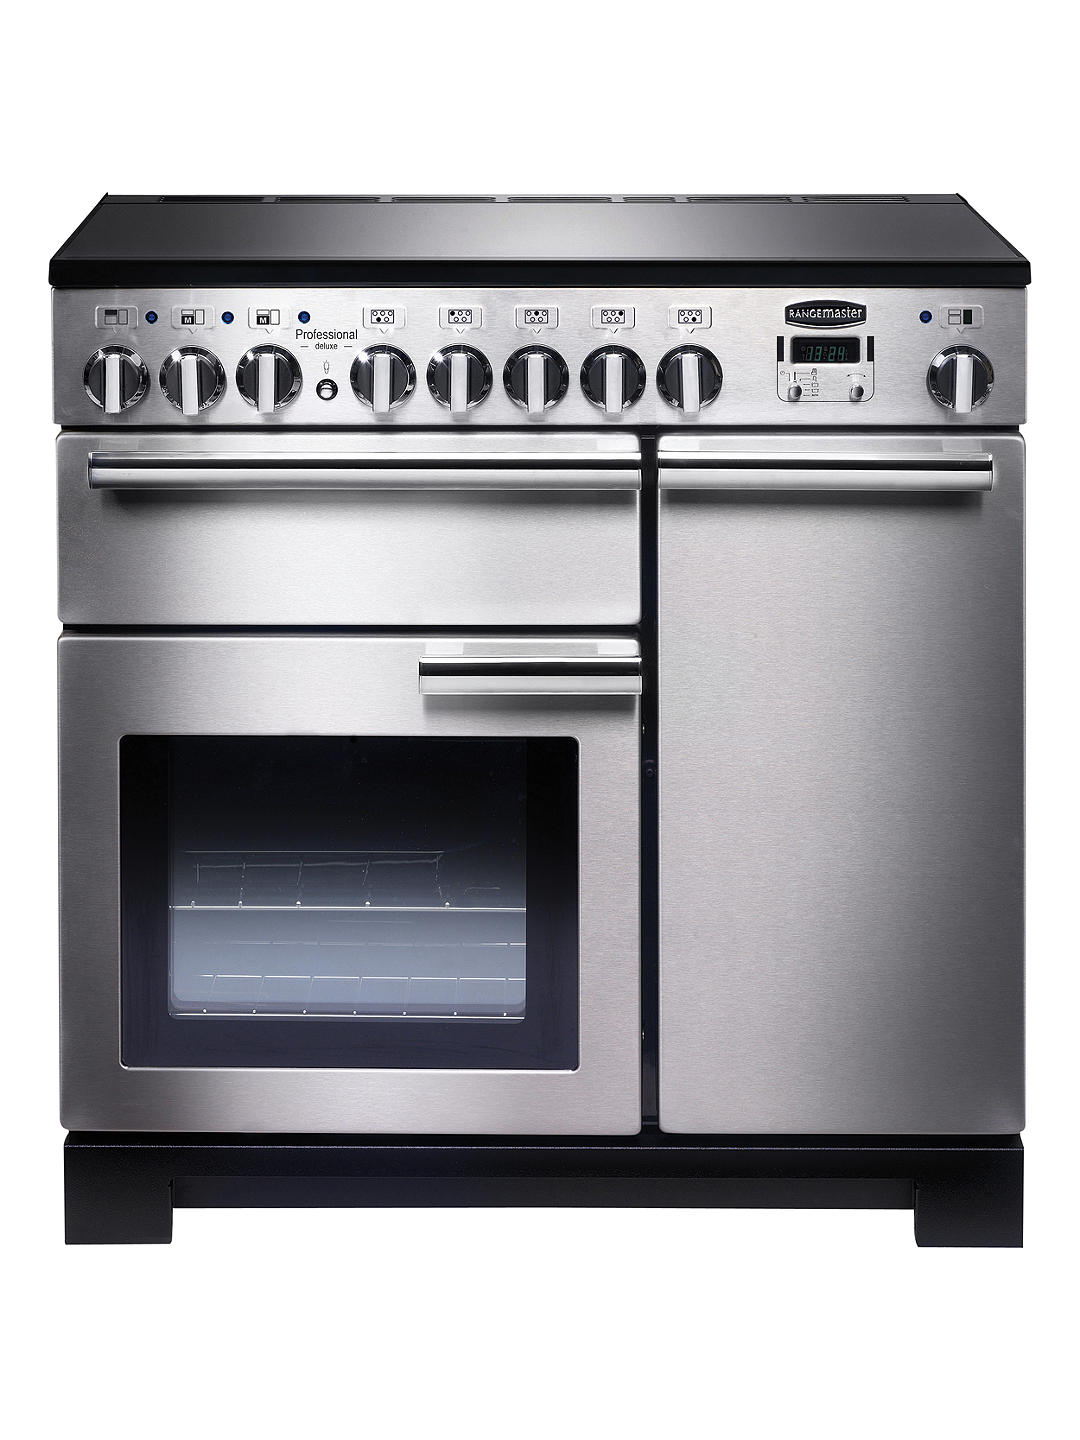 Buy Rangemaster Professional Deluxe 90 Induction Hob Range Cooker, Stainless Steel/Chrome Trim Online at johnlewis.com